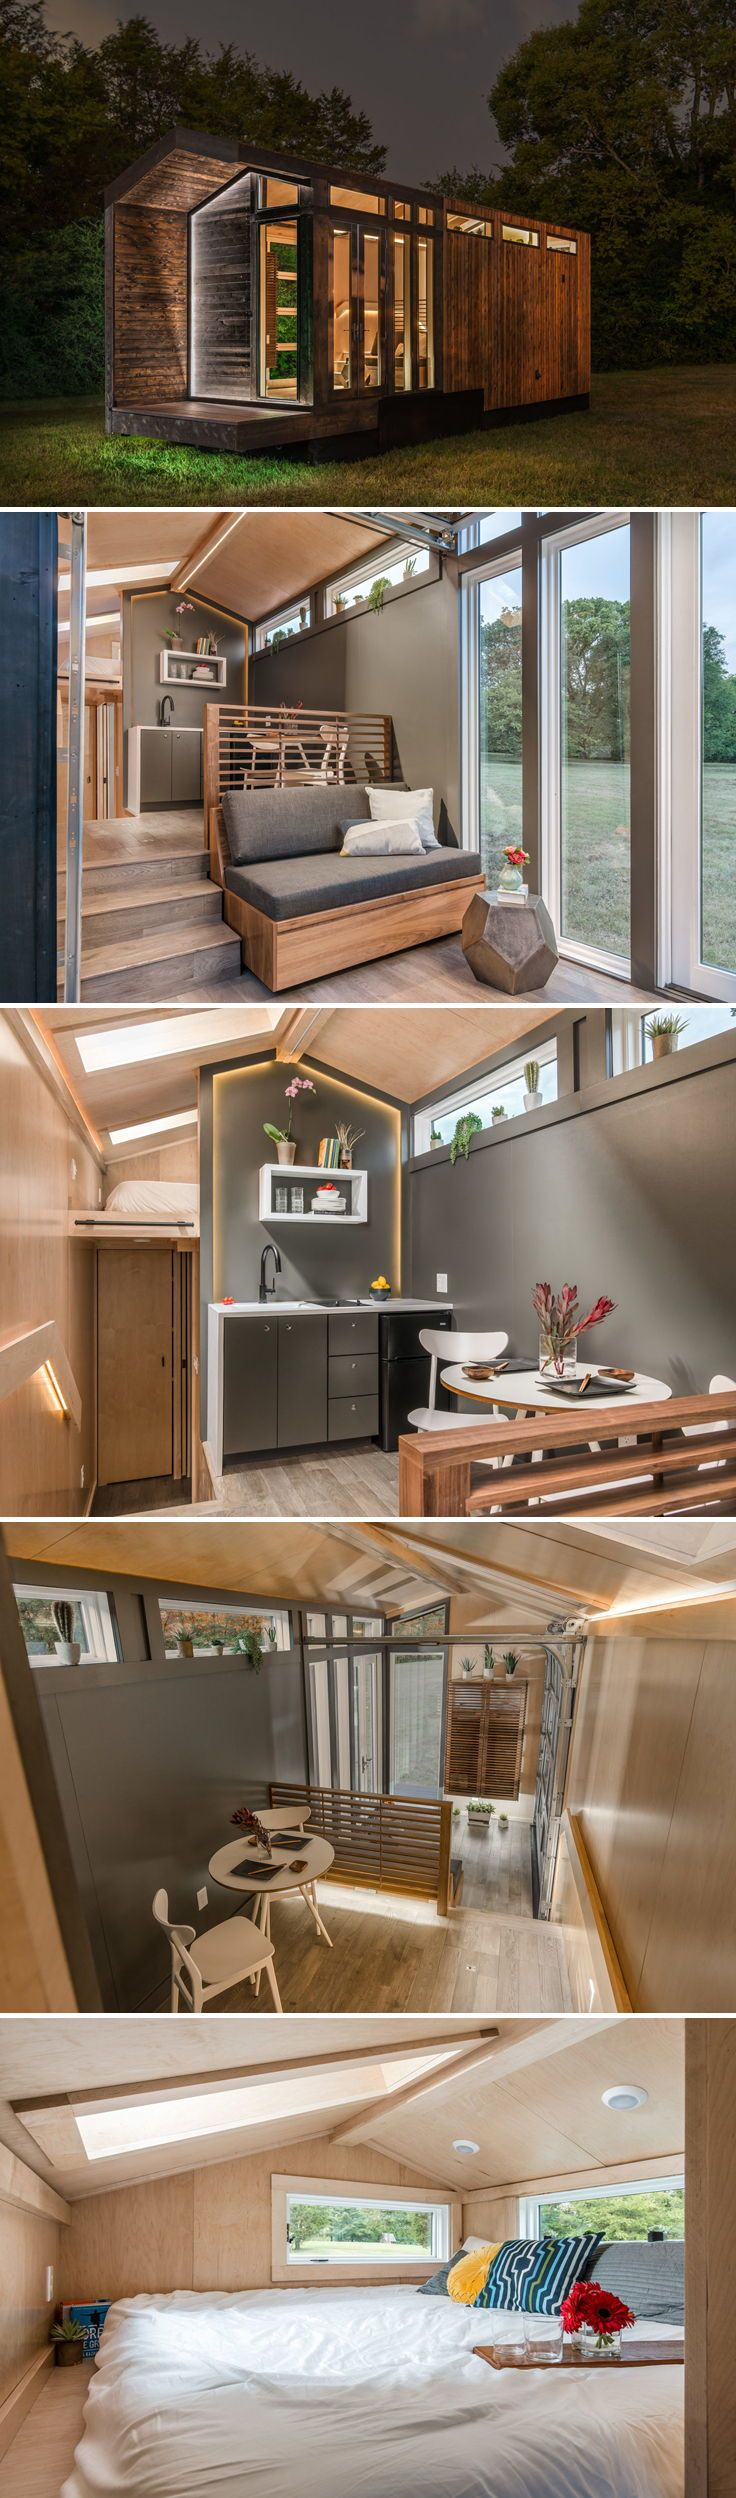 Orchid by New Frontier Tiny Homes #tinyhomes